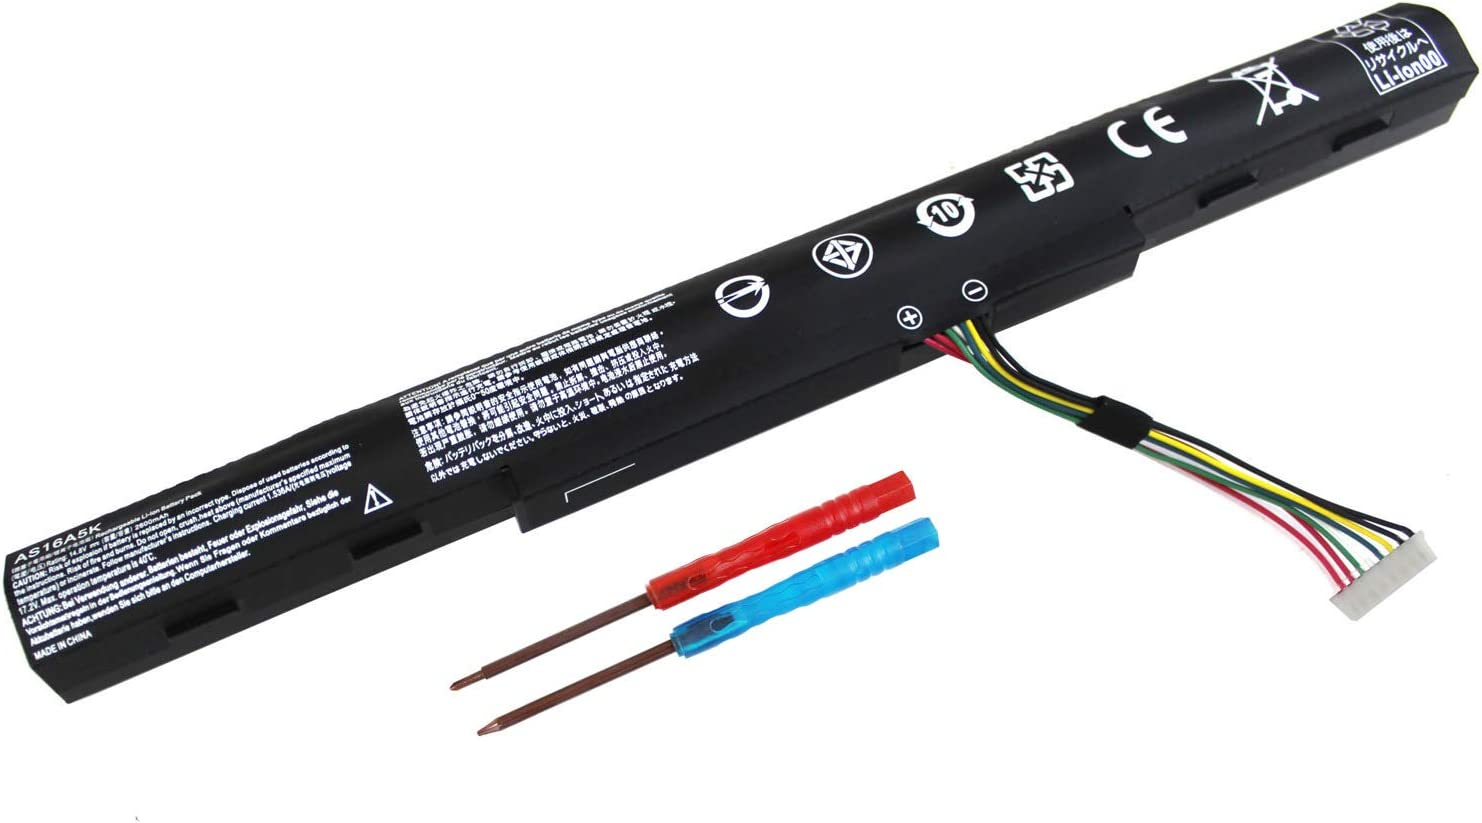 NEW 58Wh/2600mAh AS16A5K Laptop Battery for Acer Aspire E15 E5-523 E5-523G E5-553 E5-553G E5-576 E5-576G F5-573 F5-573G F5-573T Series AS16A7K AS16A8K 4ICR19/66 KT.00405.001